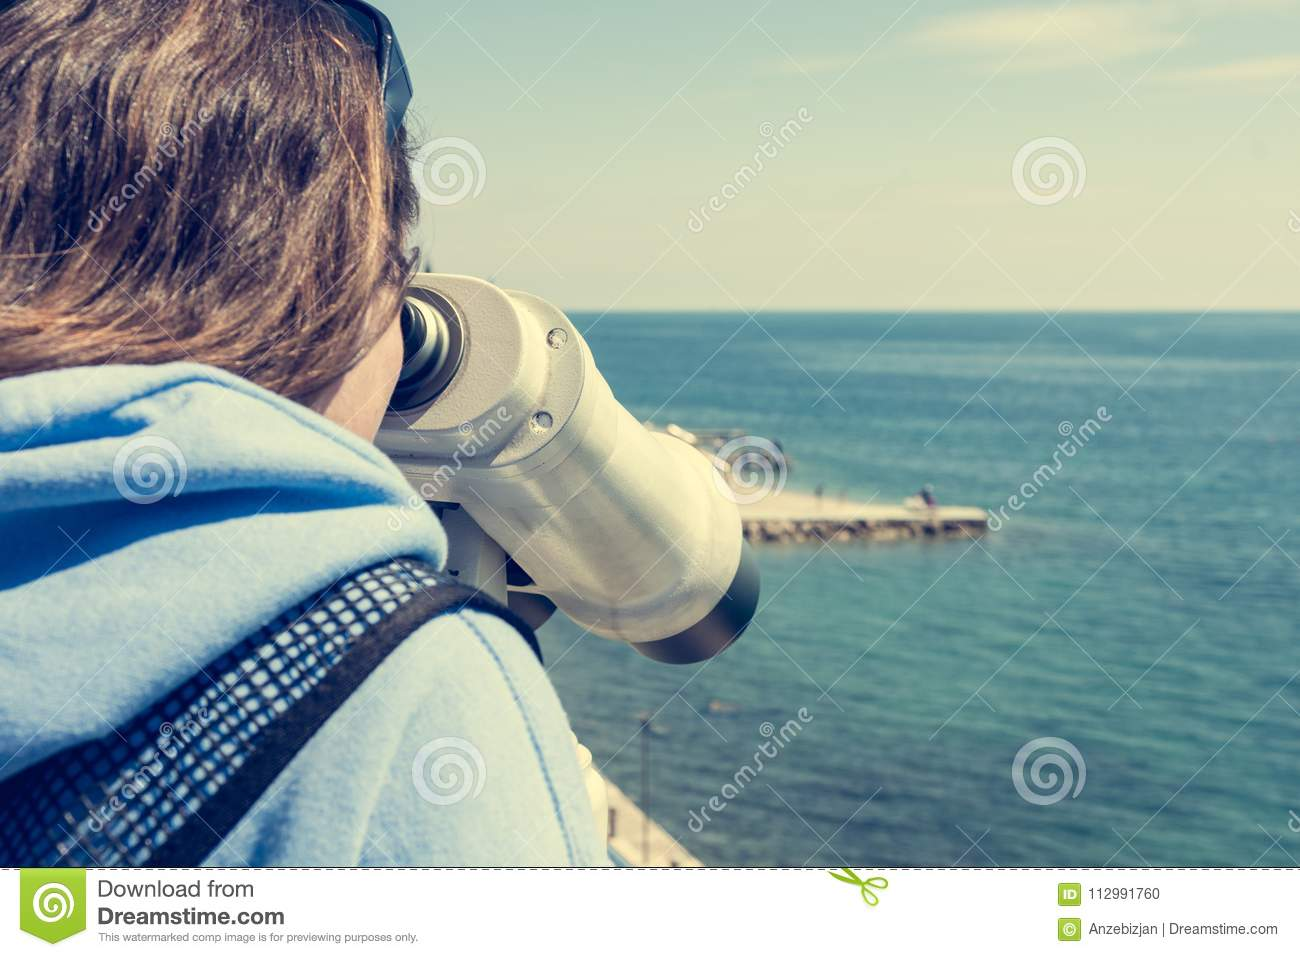 Woman looking through coin operated binoculars at seaside.